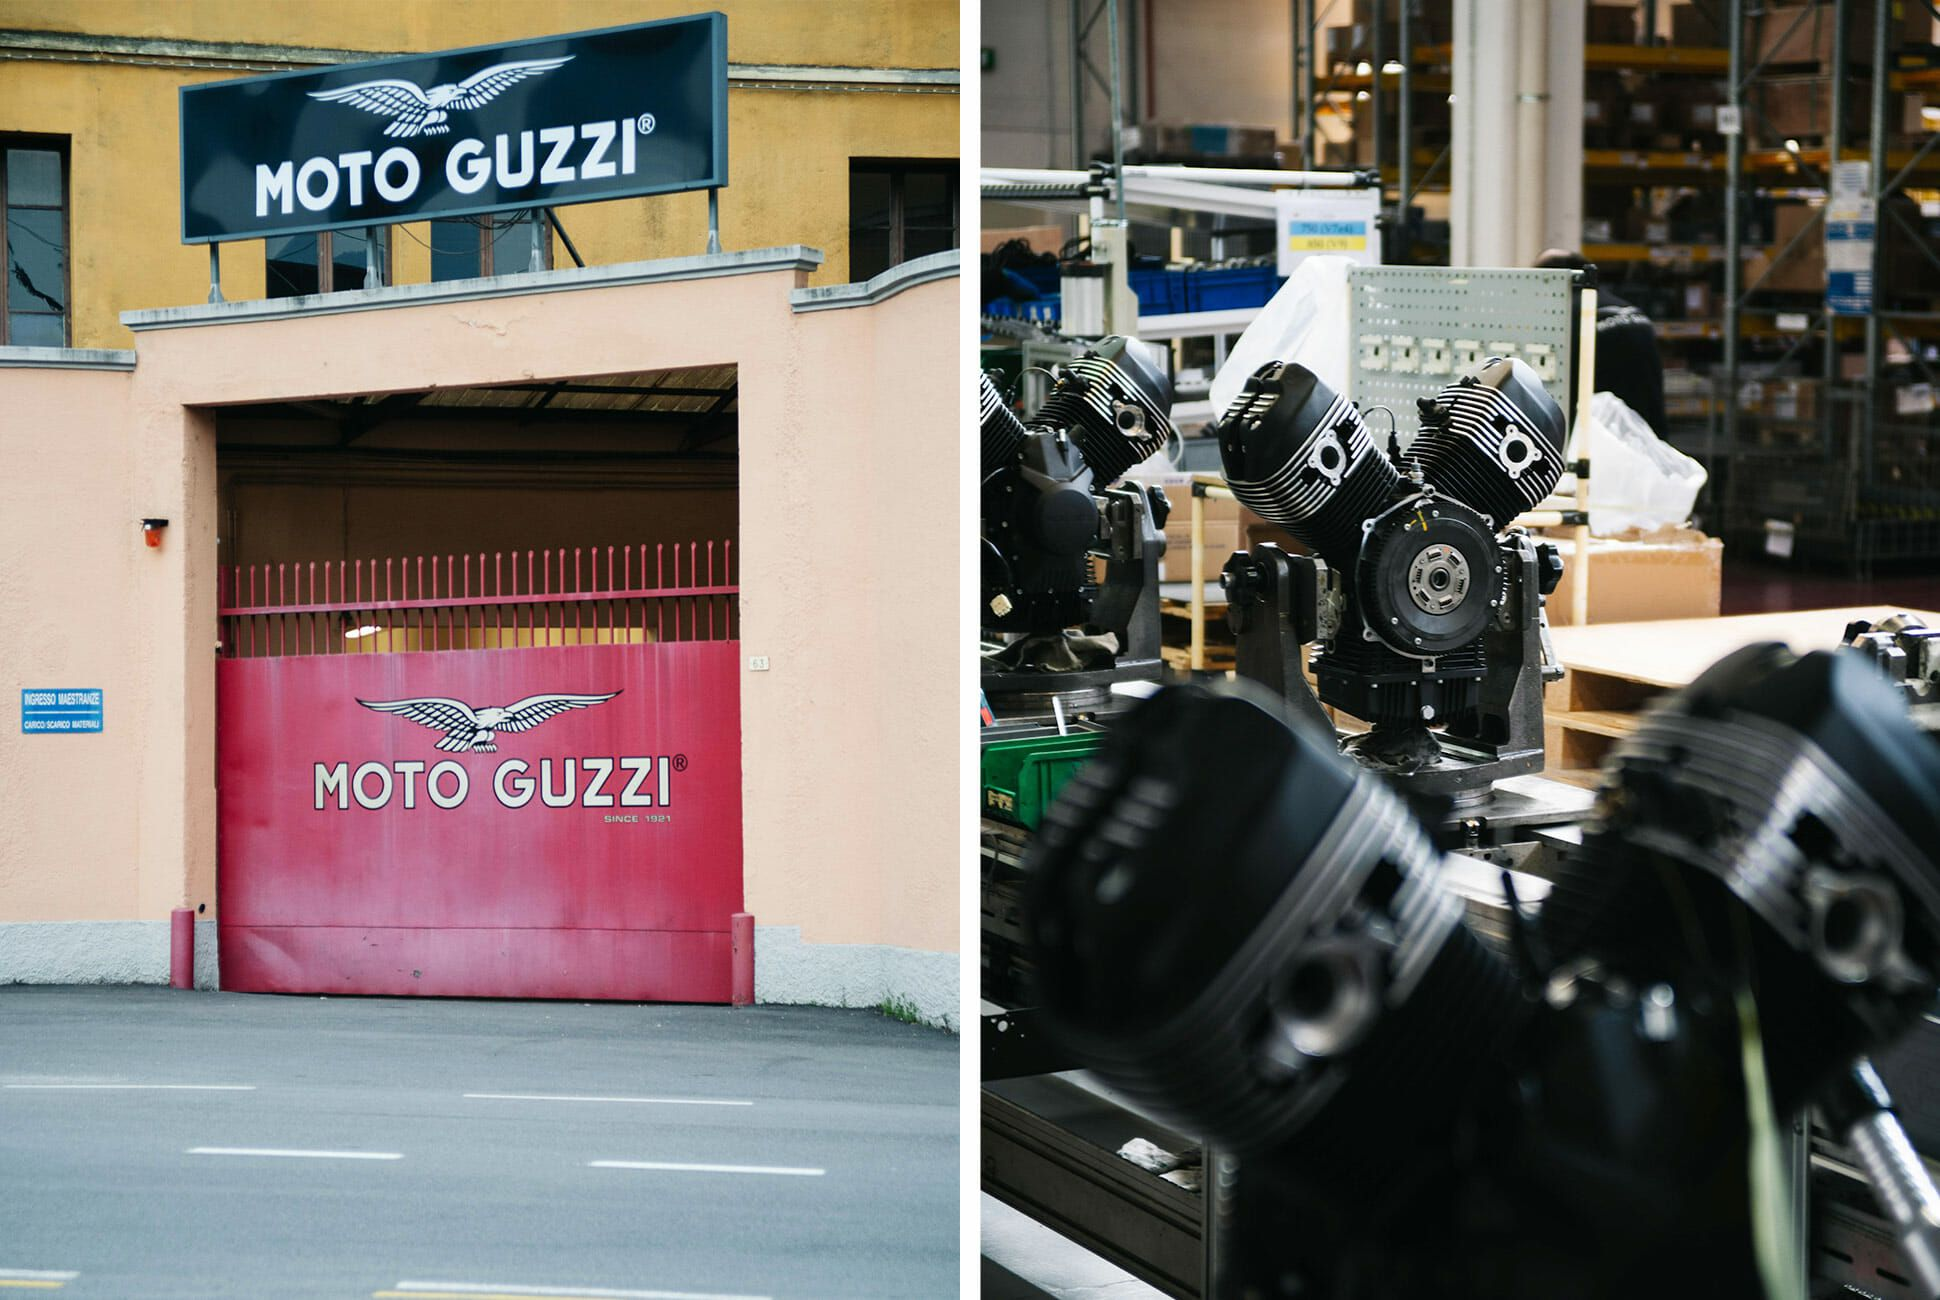 Moto-Guzzi-Factory-Tour-gear-patrol-slide-1